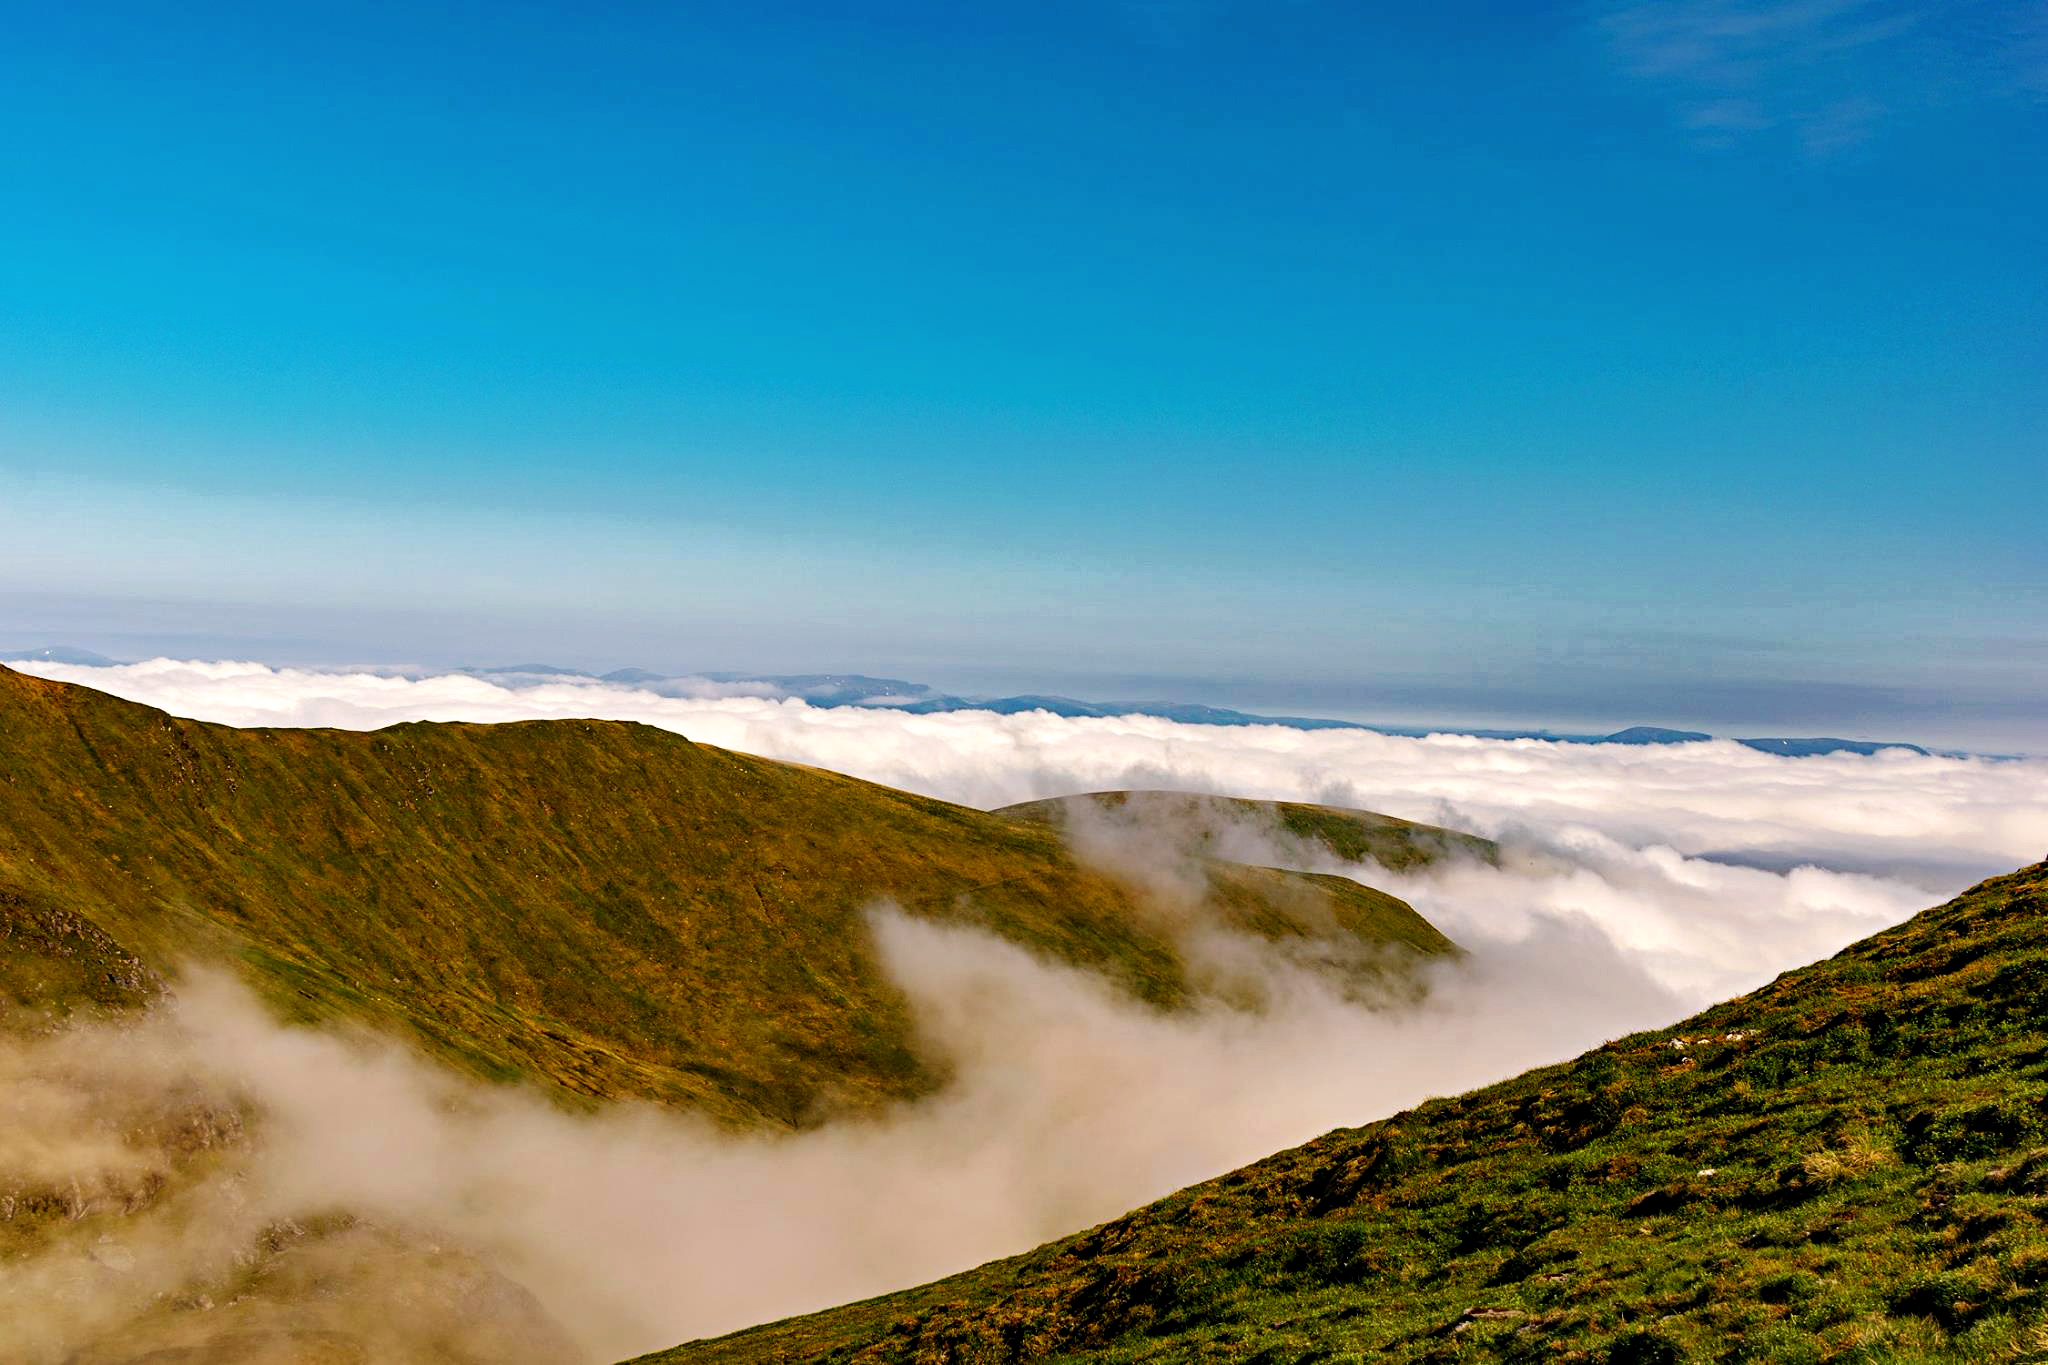 Above The Cloud Base